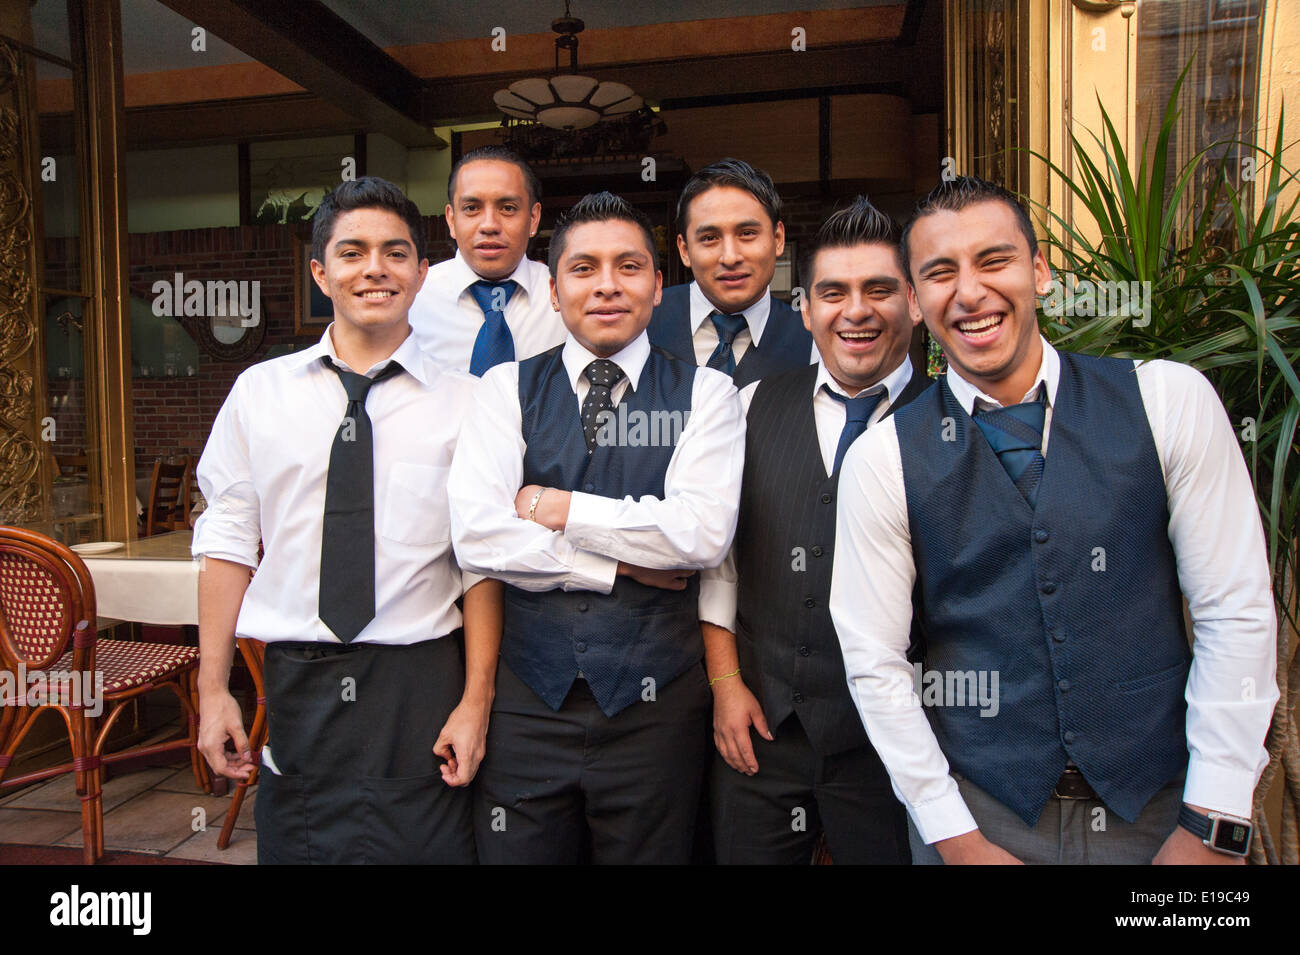 Group of Hispanic waiters posing for a photo outside restaurant on Mulberry Street in Little Italy, New York City, USA - Stock Image